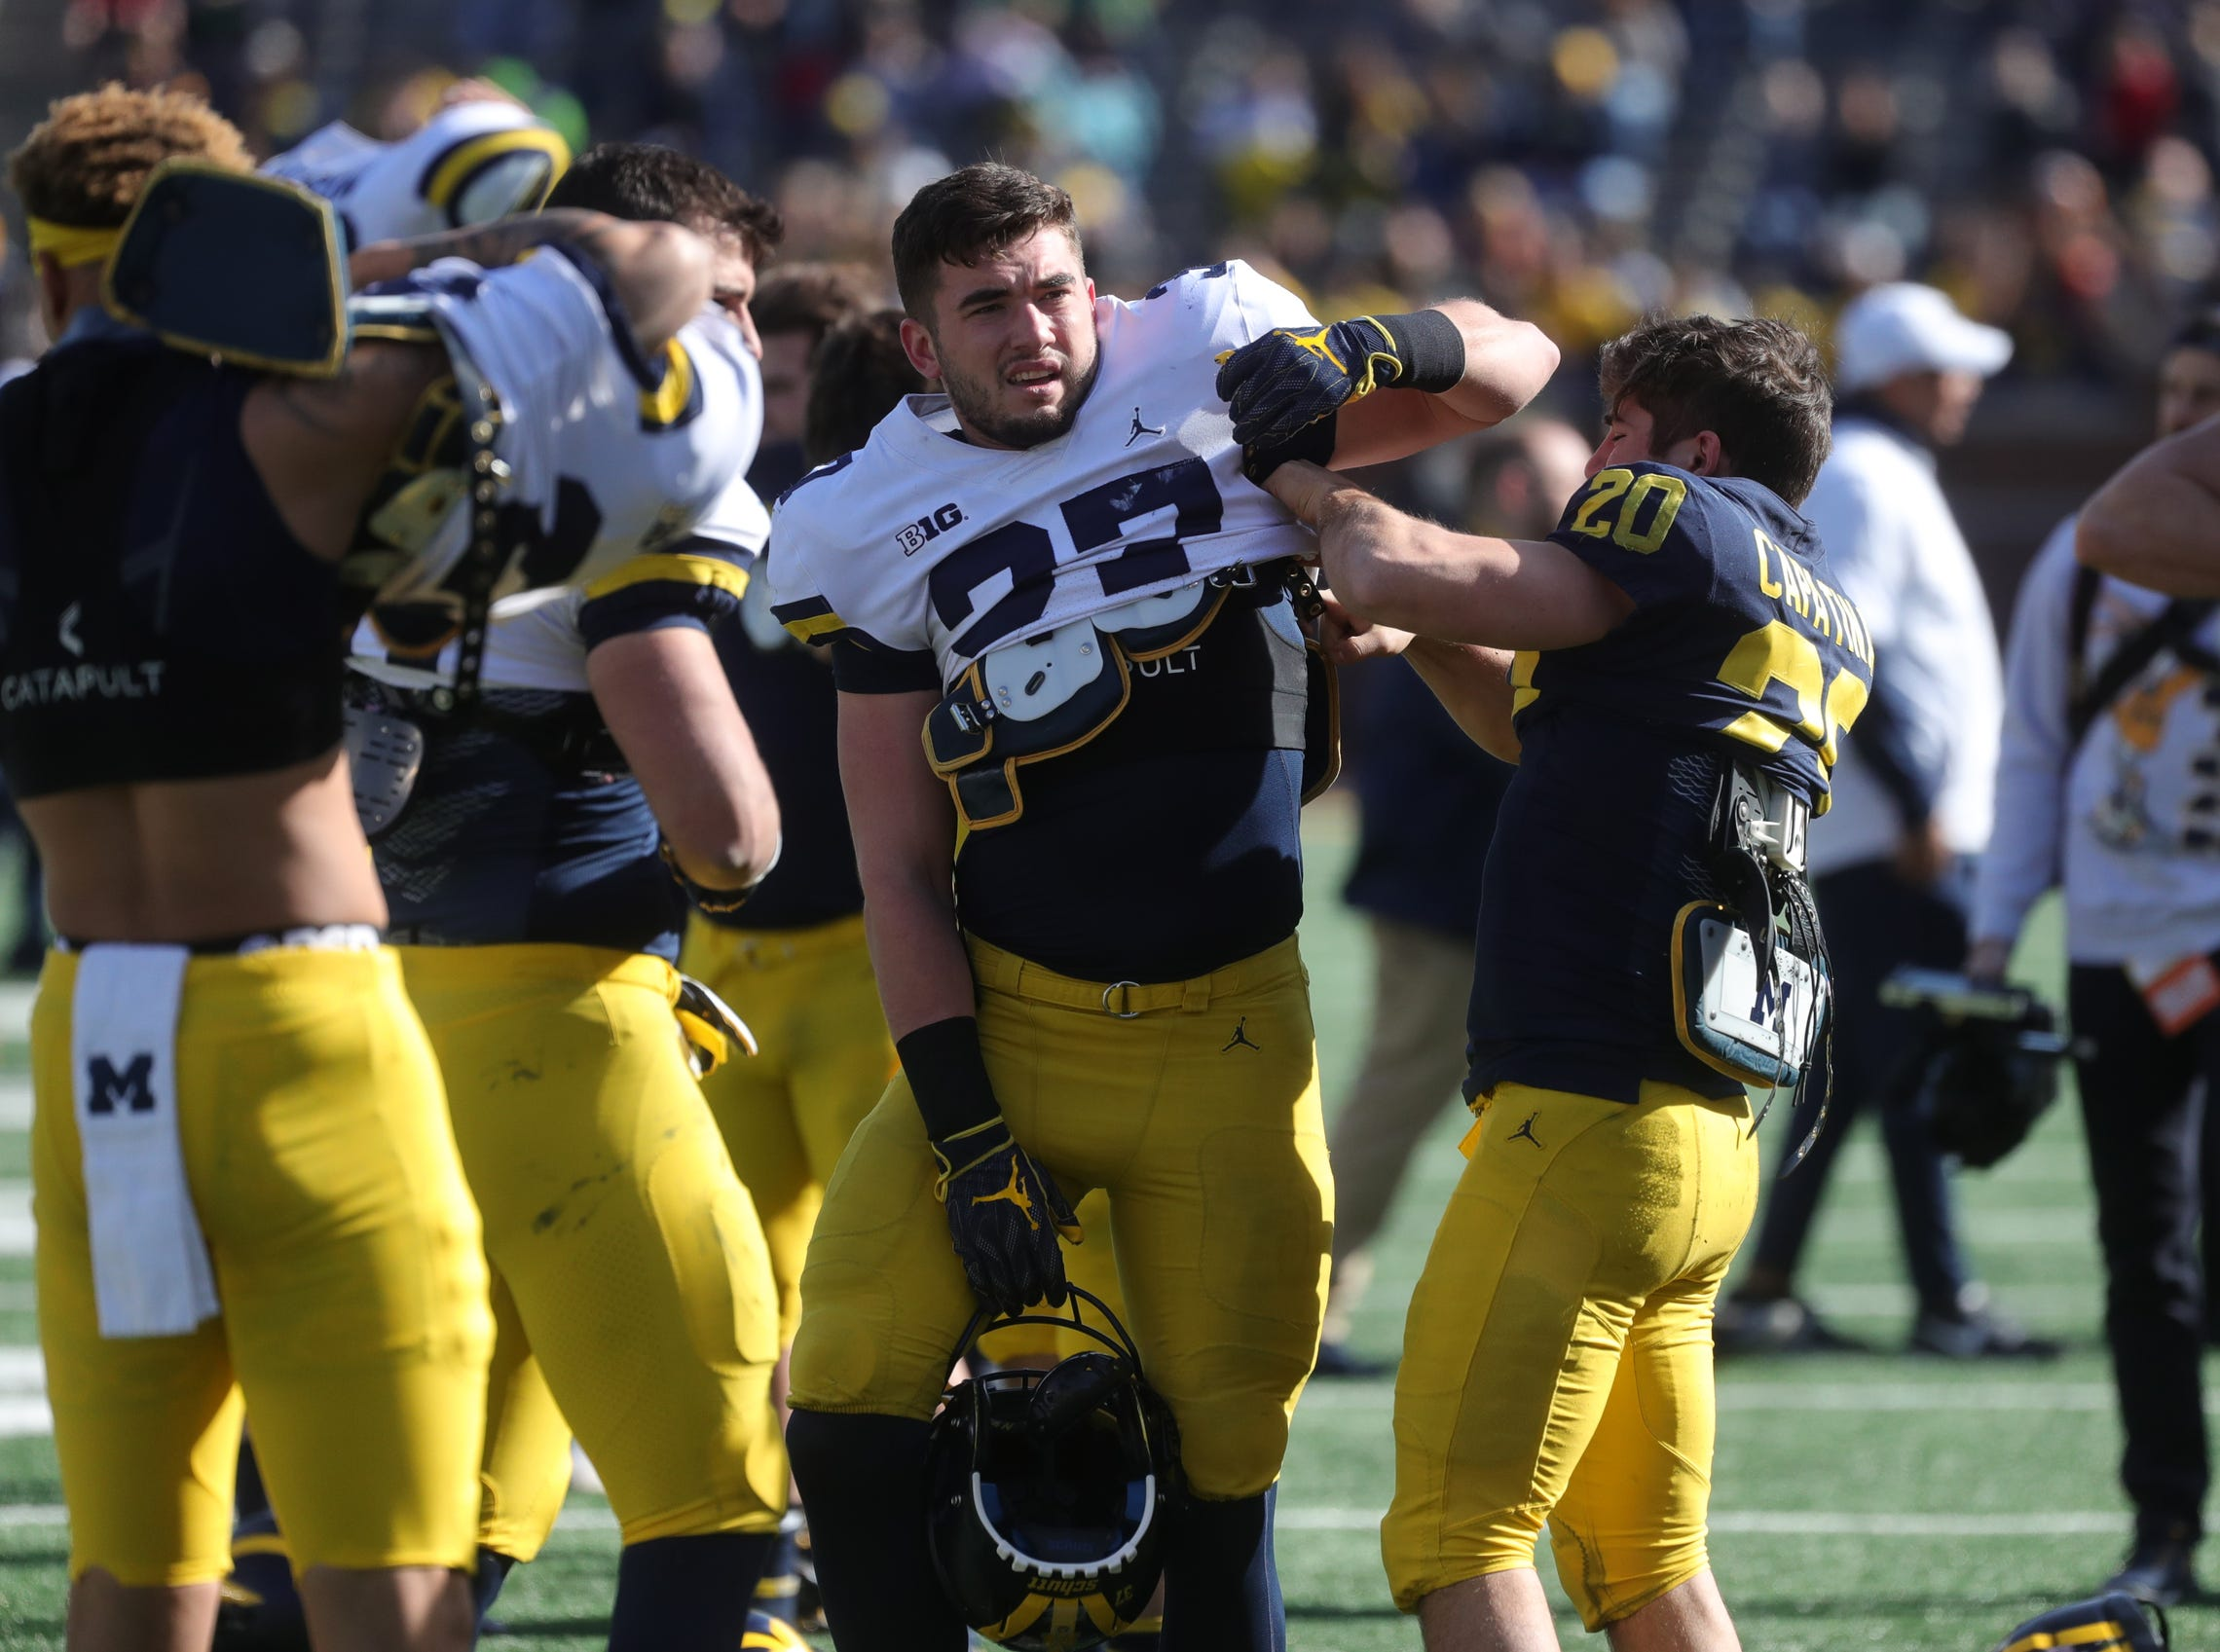 Michigan players put on pads before the spring game Saturday, April 13, 2019 at Michigan Stadium in Ann Arbor.